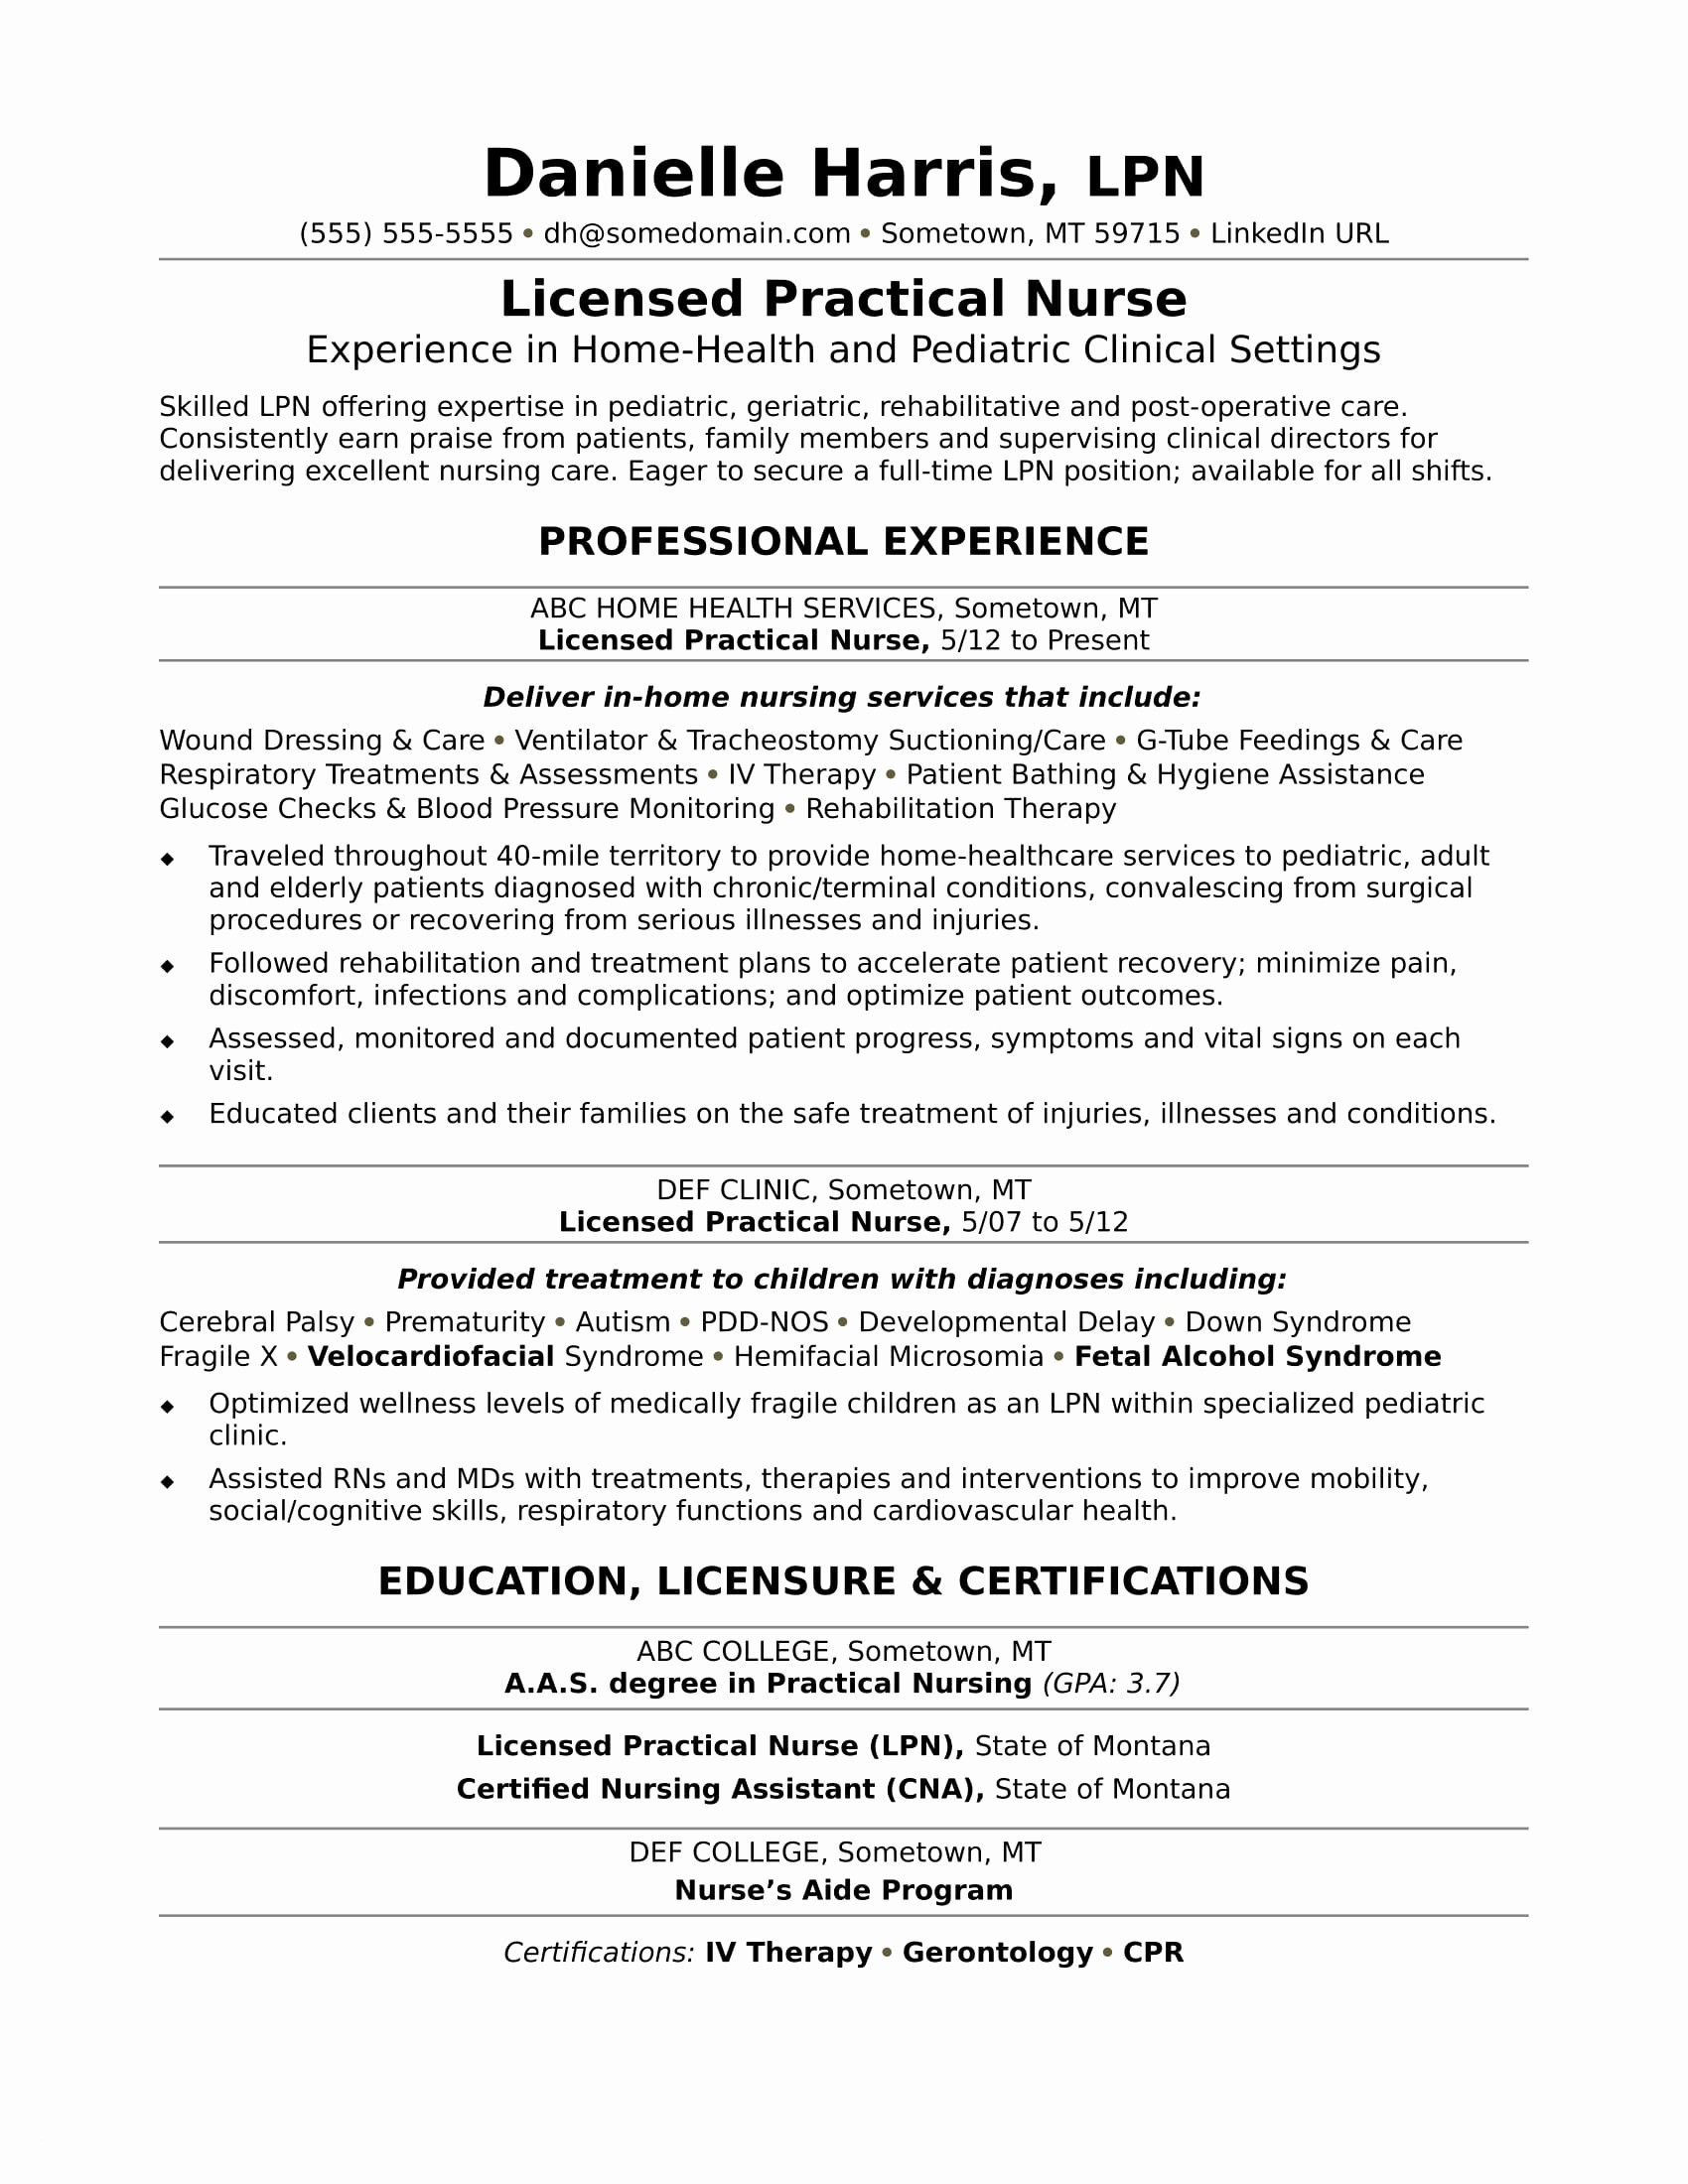 Best Profile for Resume - Resume Professional Profile Best Professional Profile Resume